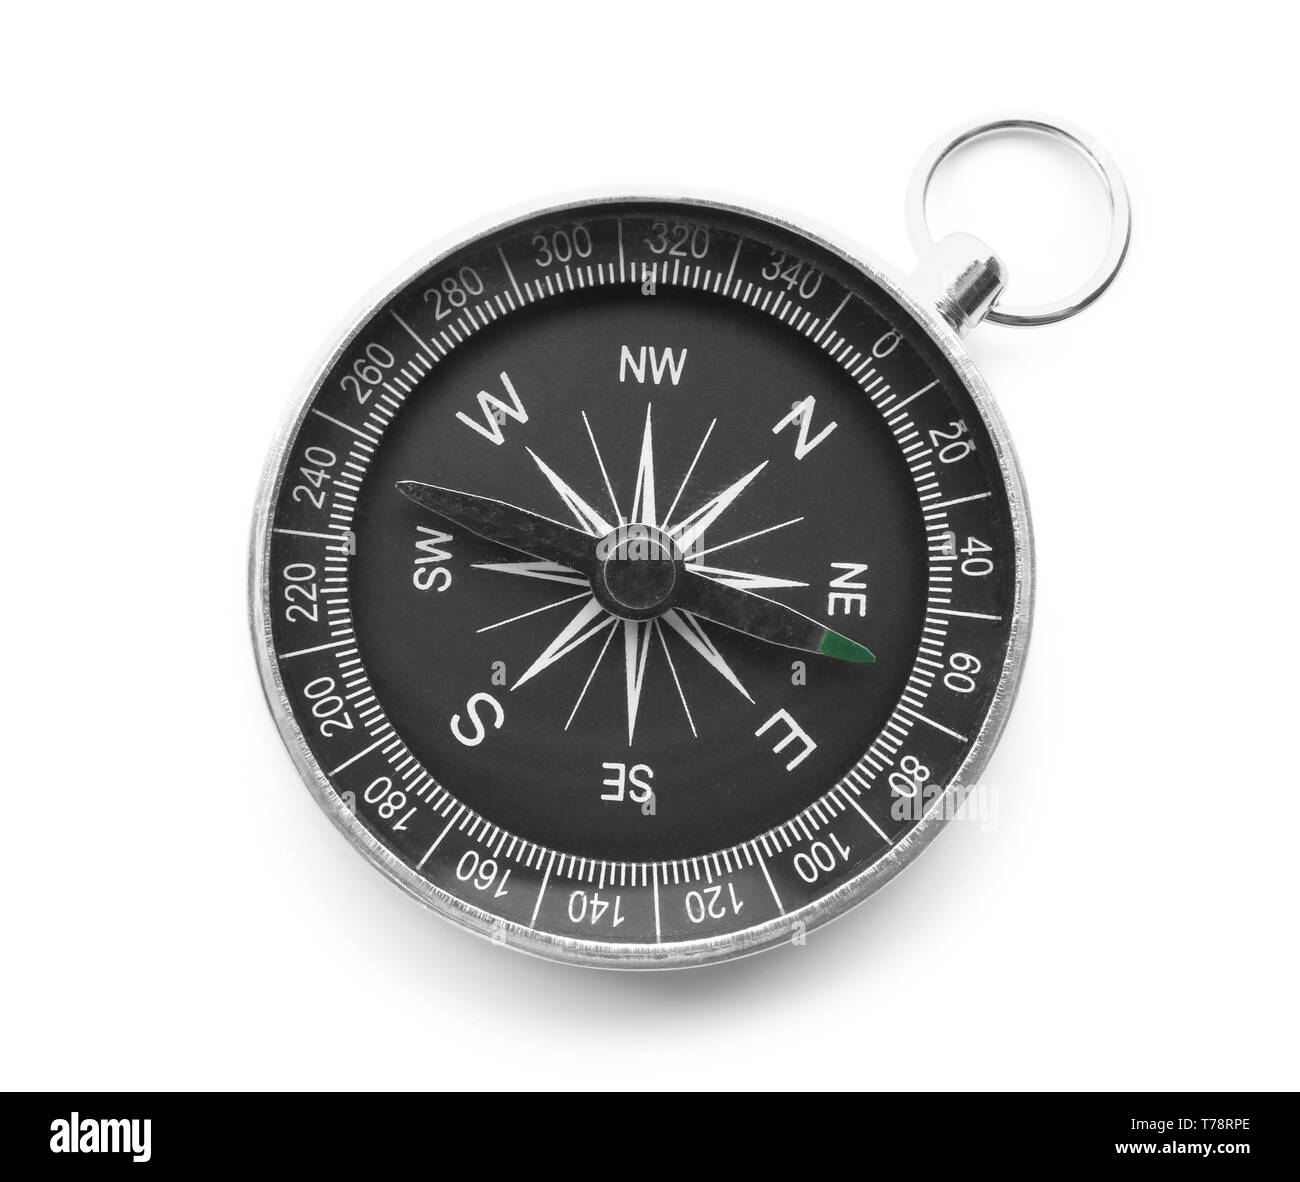 Modern compass on white background - Stock Image